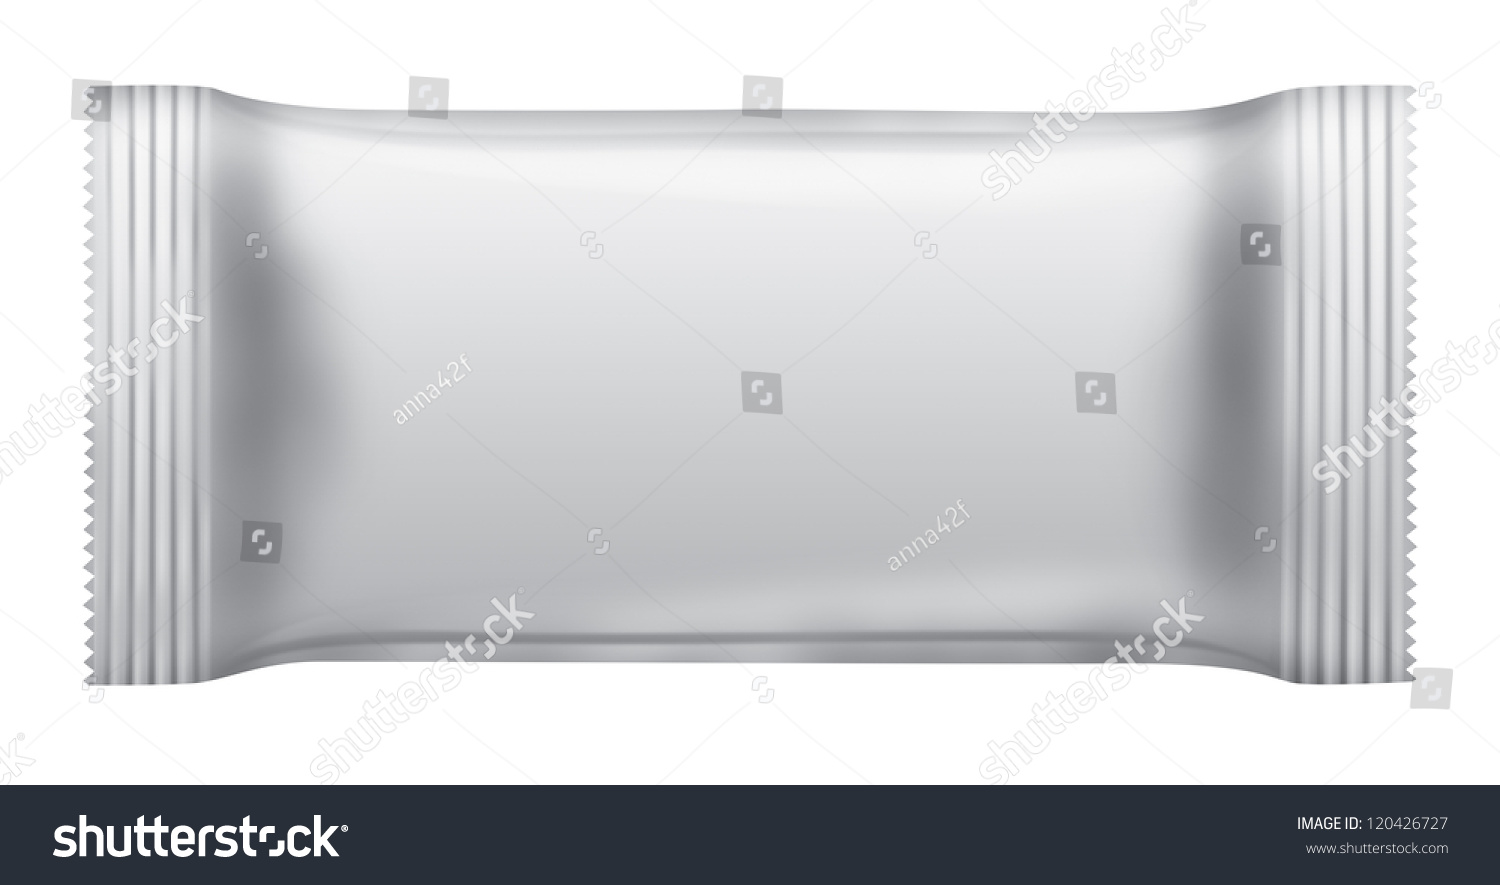 Blank Chocolate Bar Package Isolated On White Background 3D